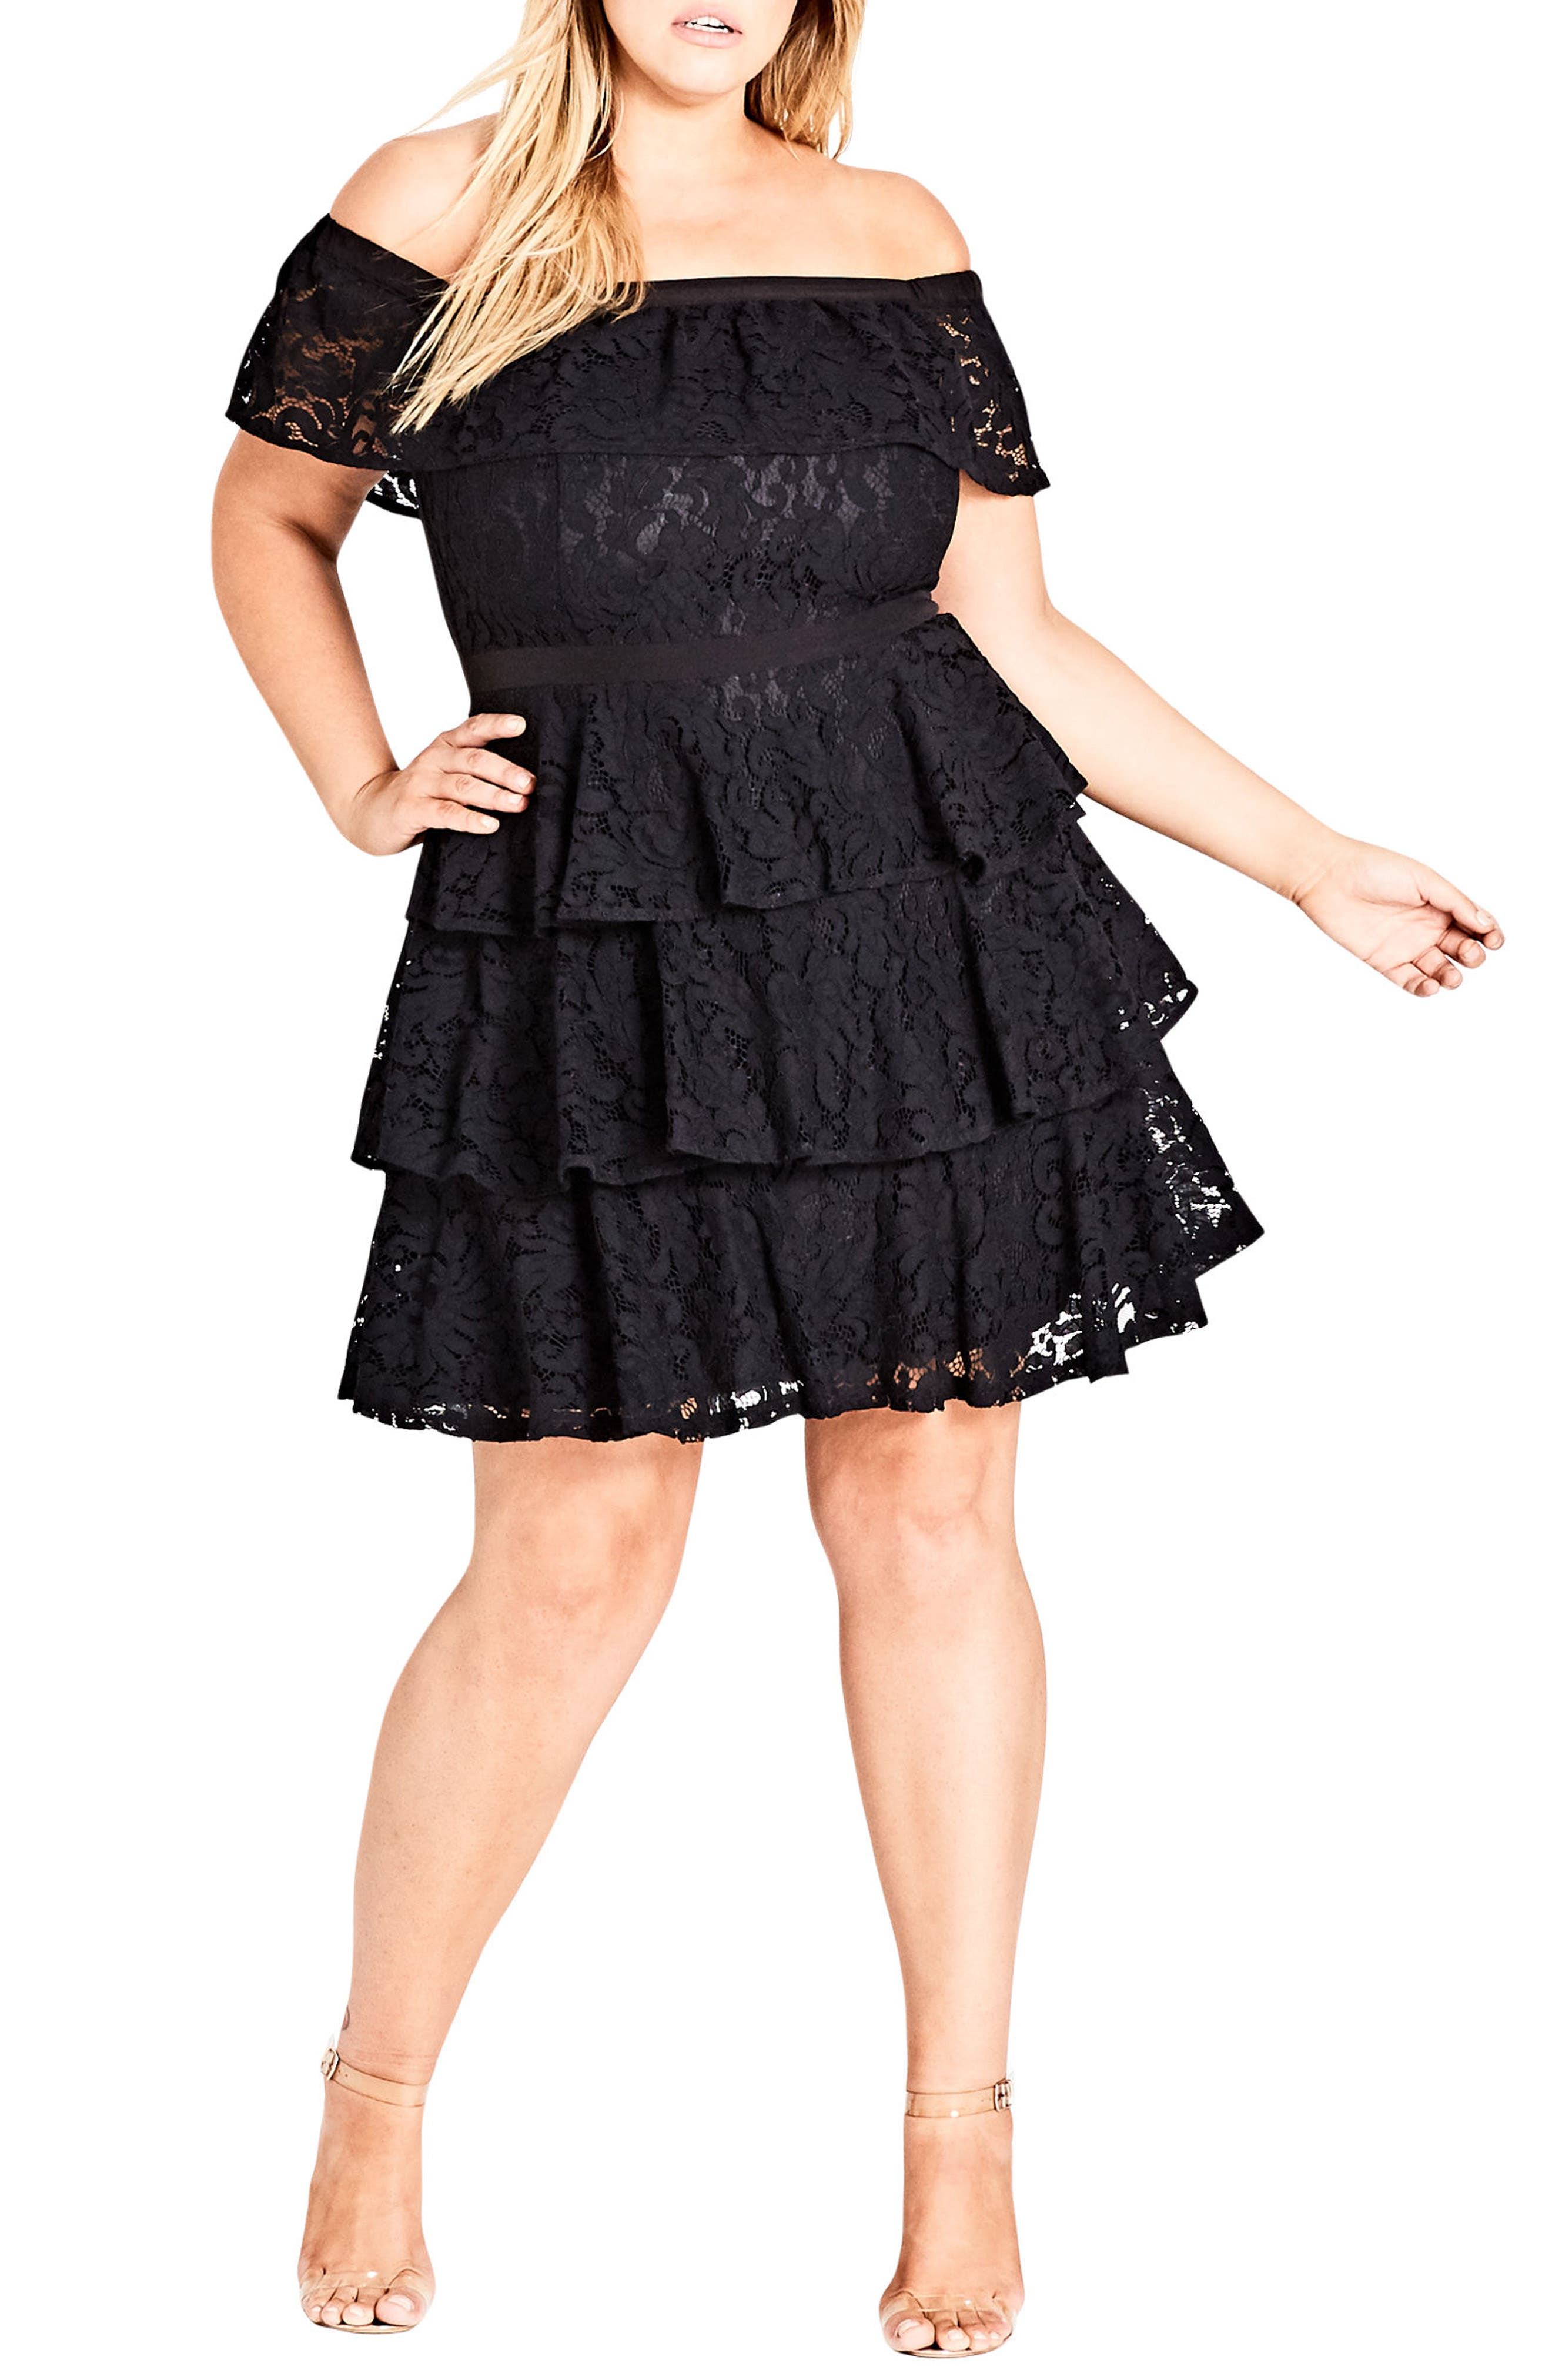 Lady Layers Ruffle Lace Off the Shoulder Dress,                             Main thumbnail 1, color,                             BLACK